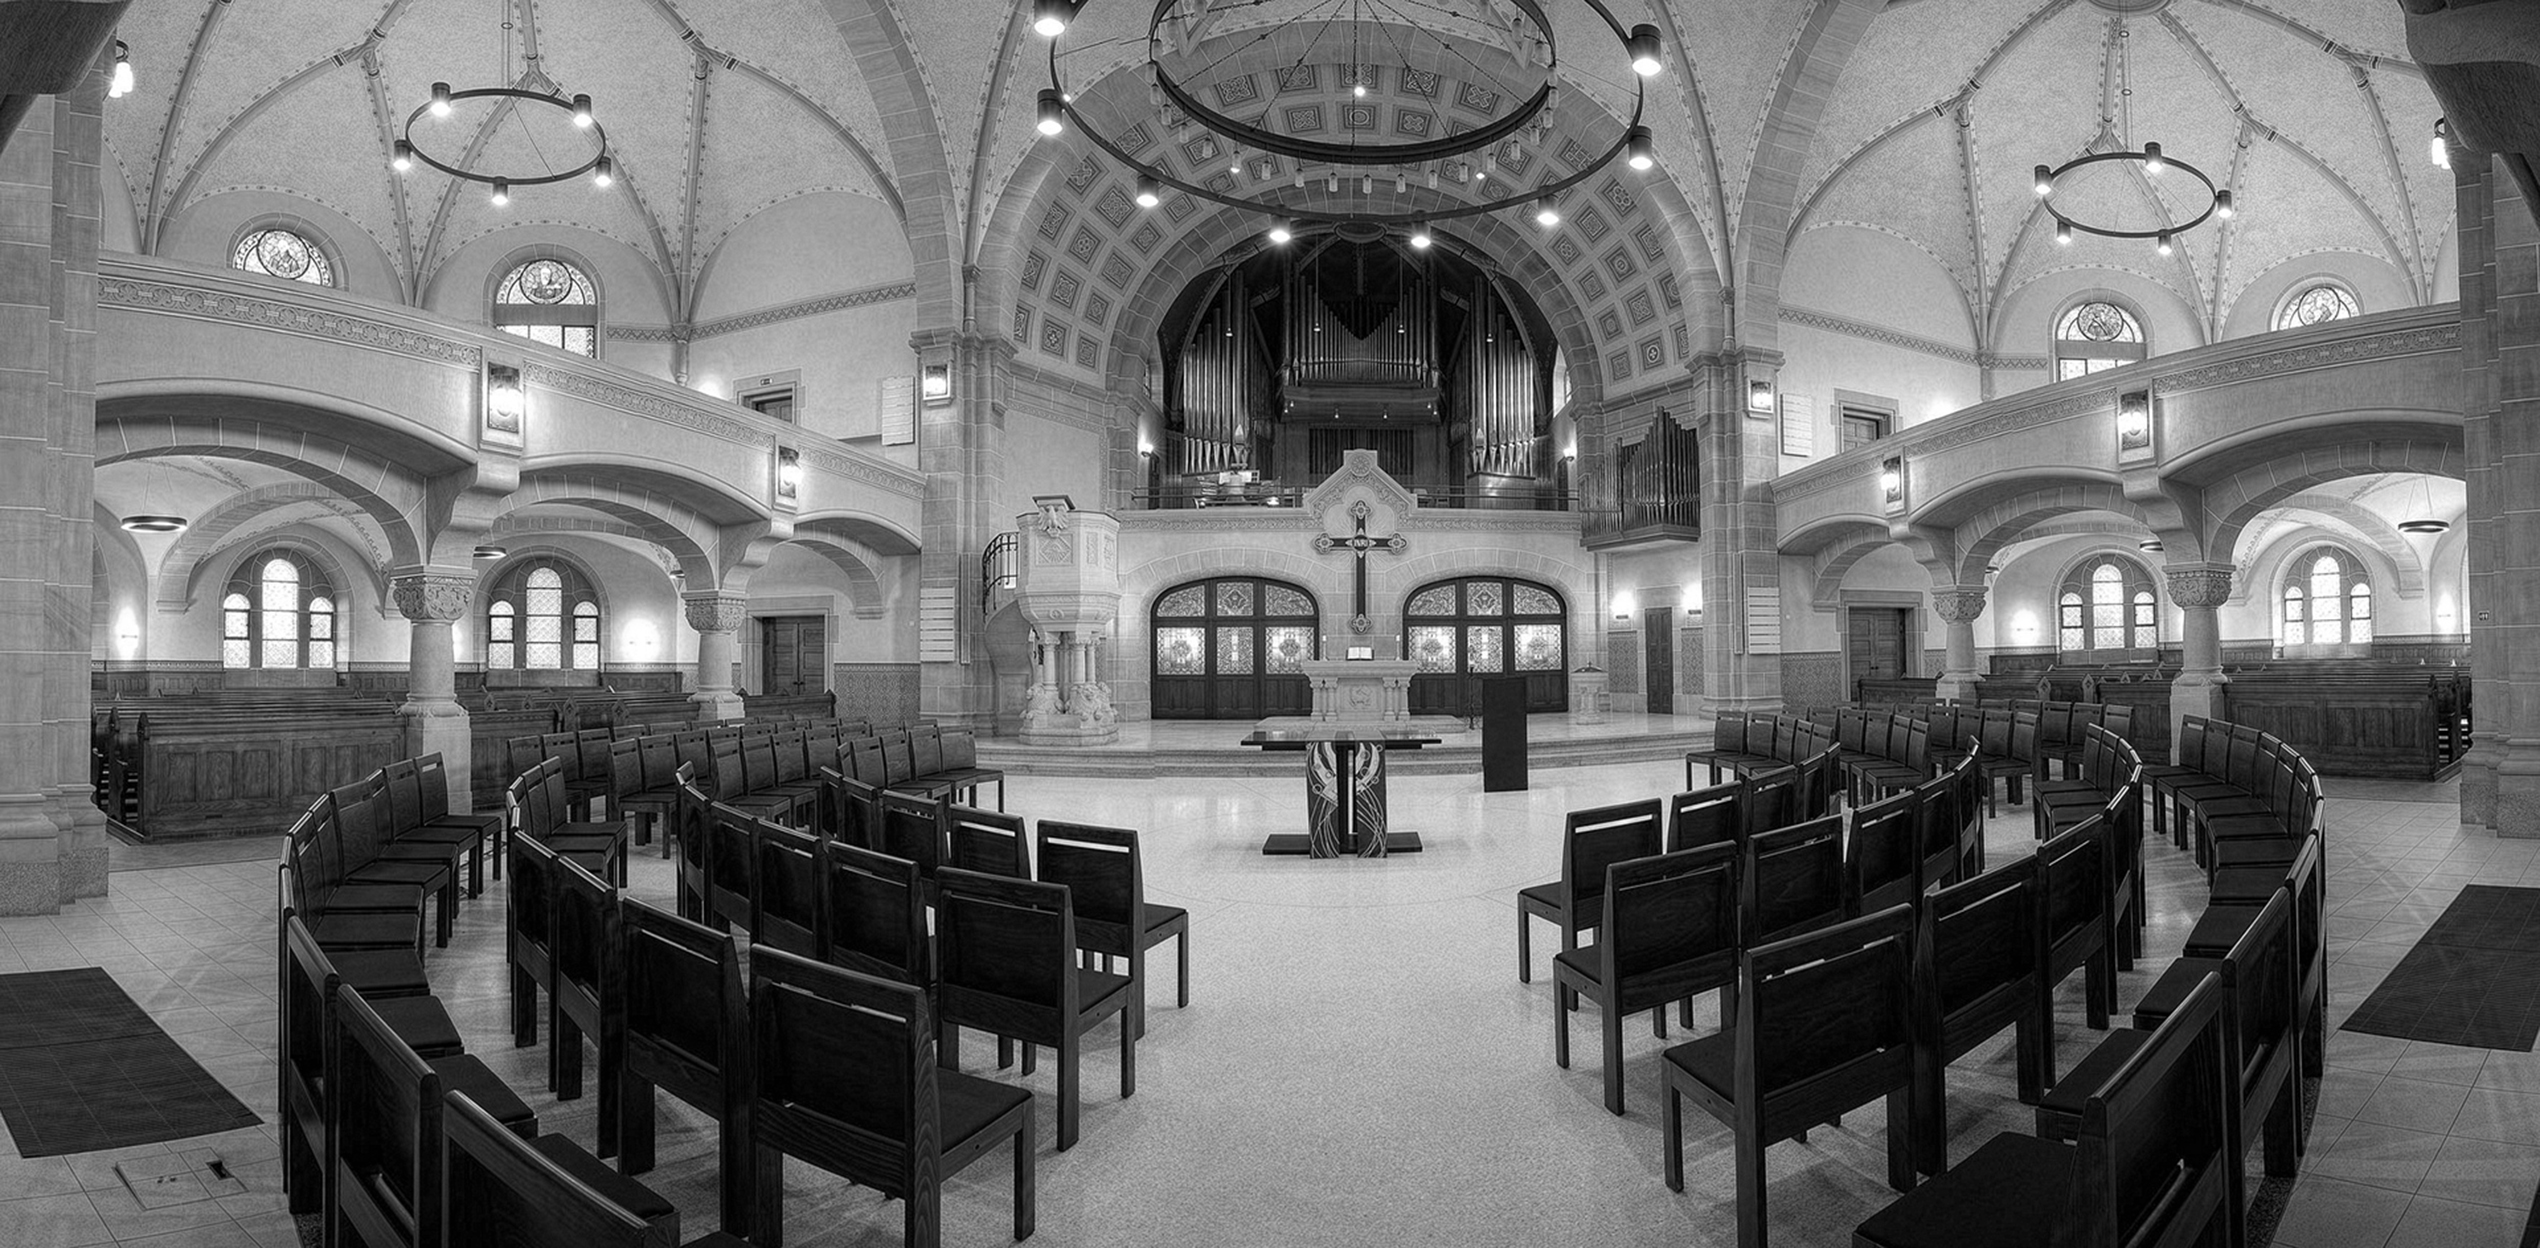 Panorama_Peterskirche_L1011679_SW by .